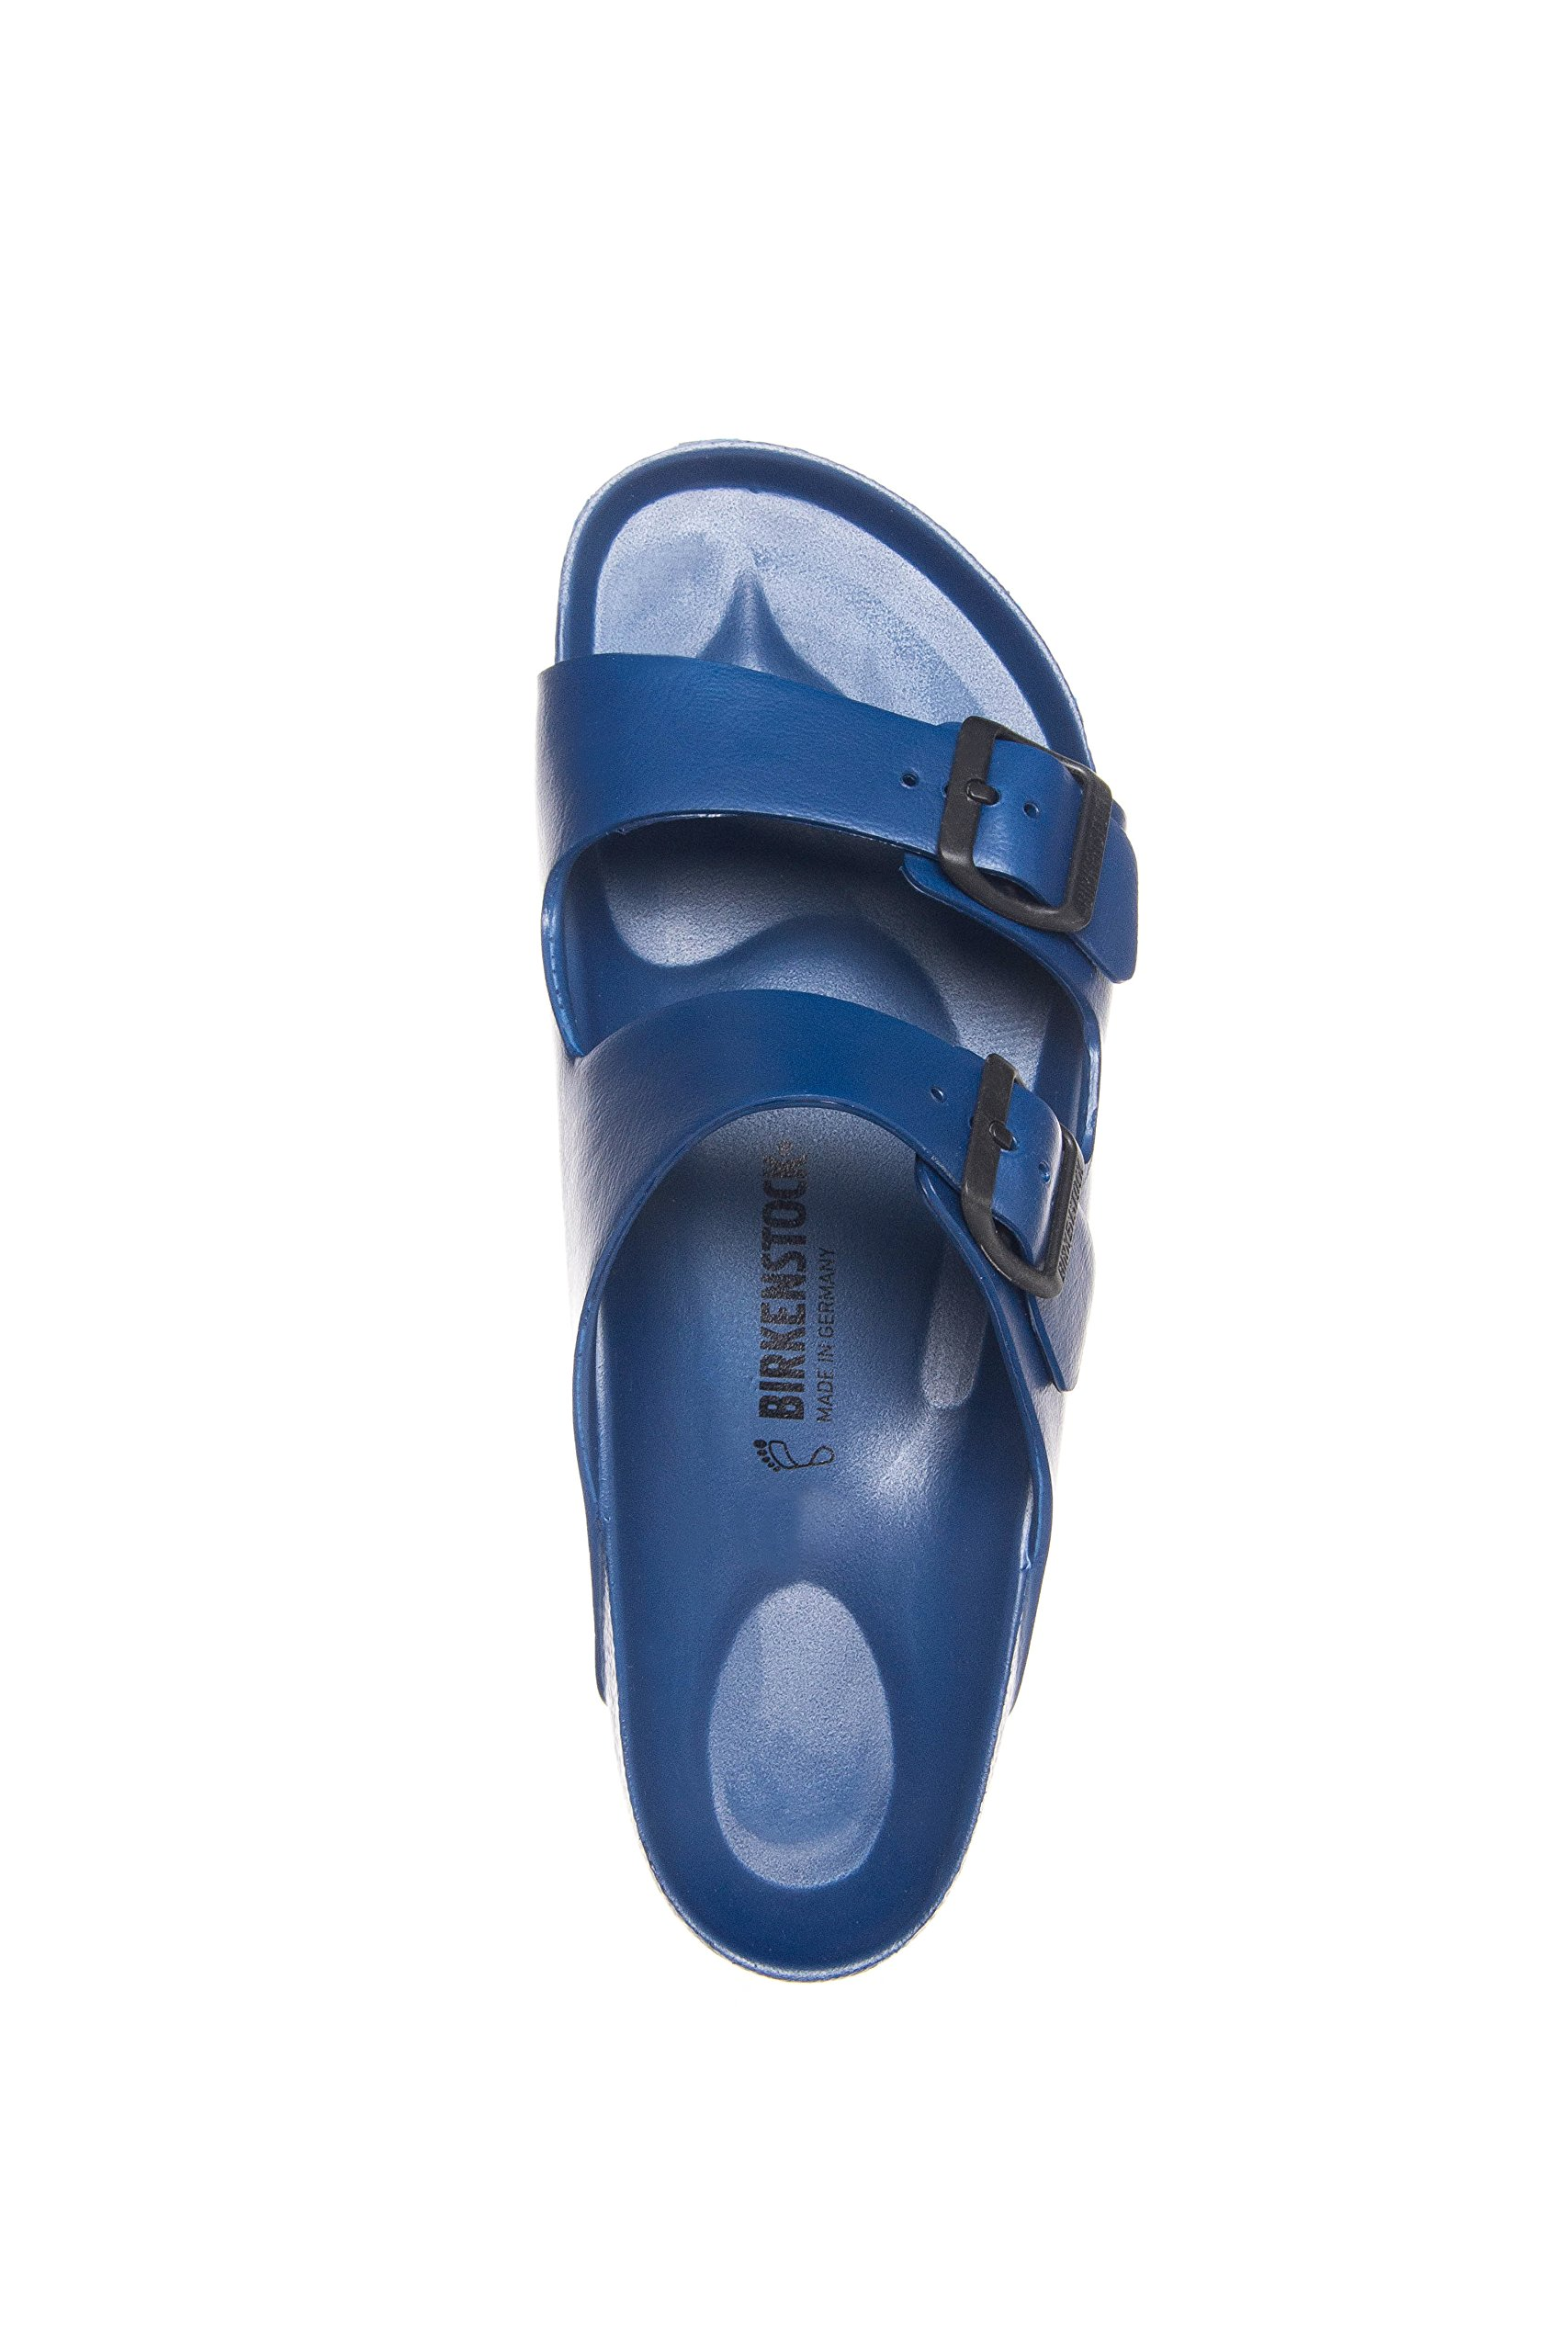 4fdff0650a6 Birkenstock Unisex Arizona Essentials EVA Navy Sandals - 44 M EU 13-13.5  B(M) US Women 11-11.5 D(M) US Men - 00129431-400   Sandals   Clothing